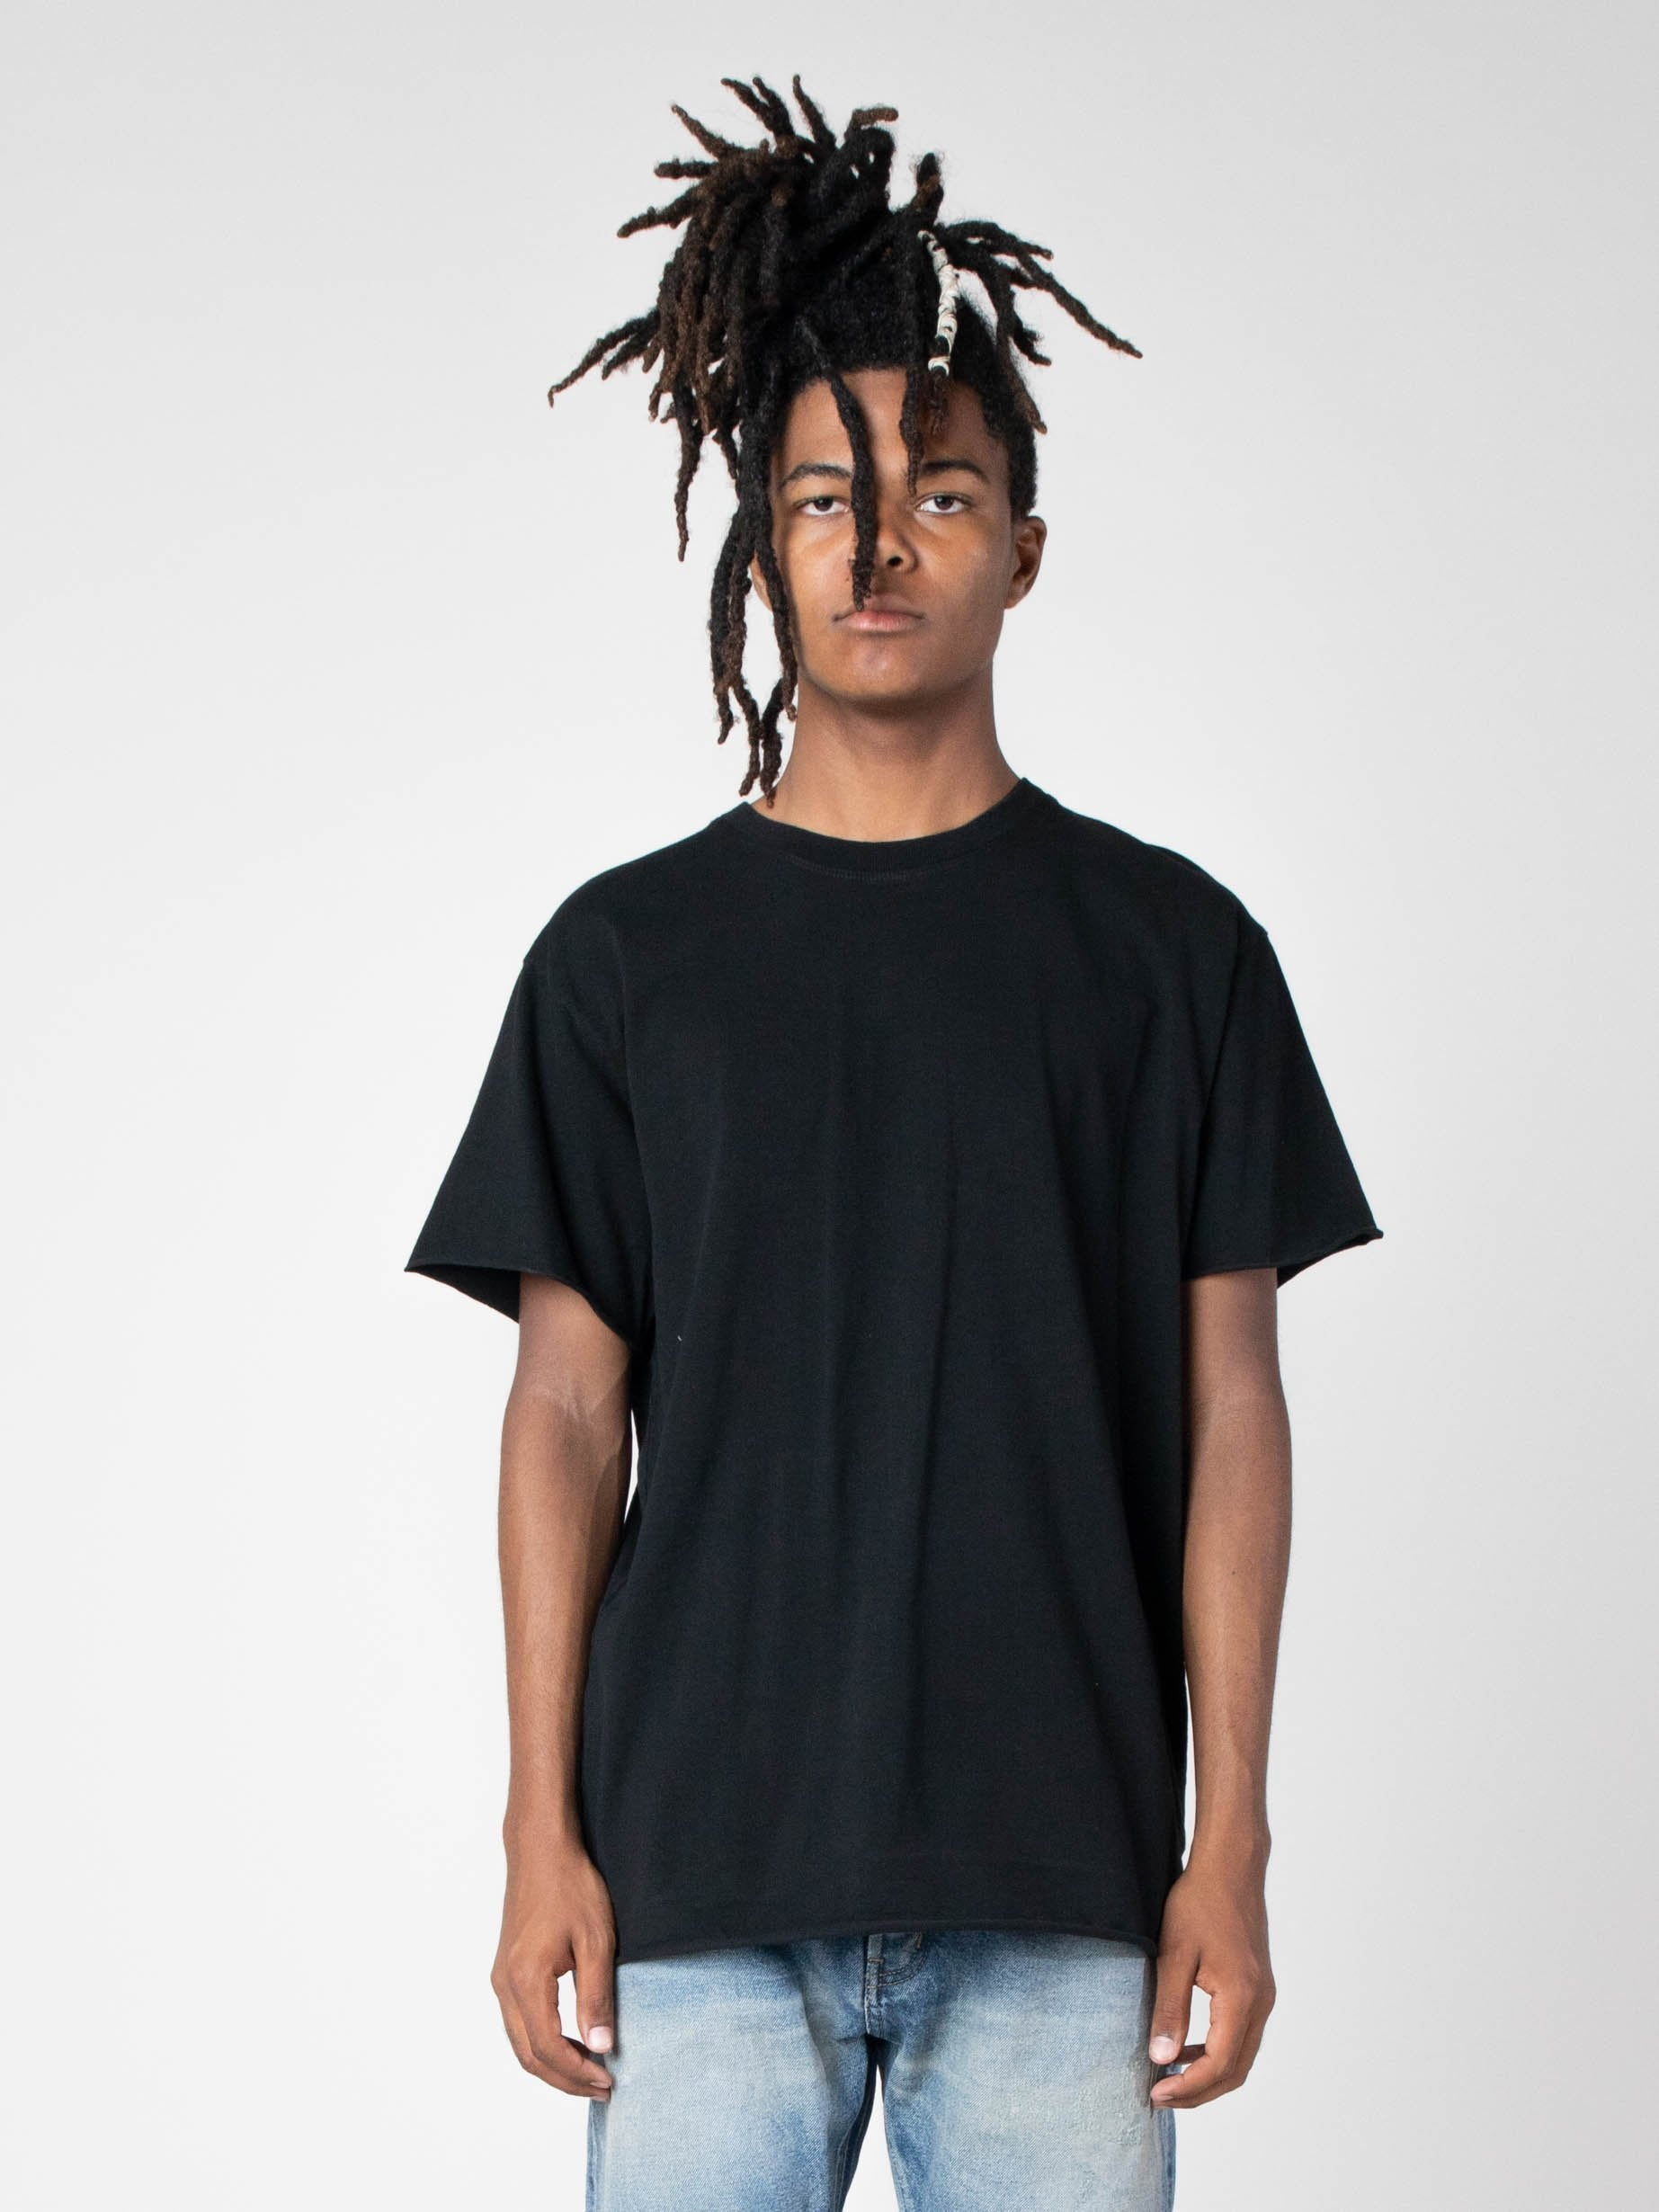 Black Anti-Expo T-Shirt 2